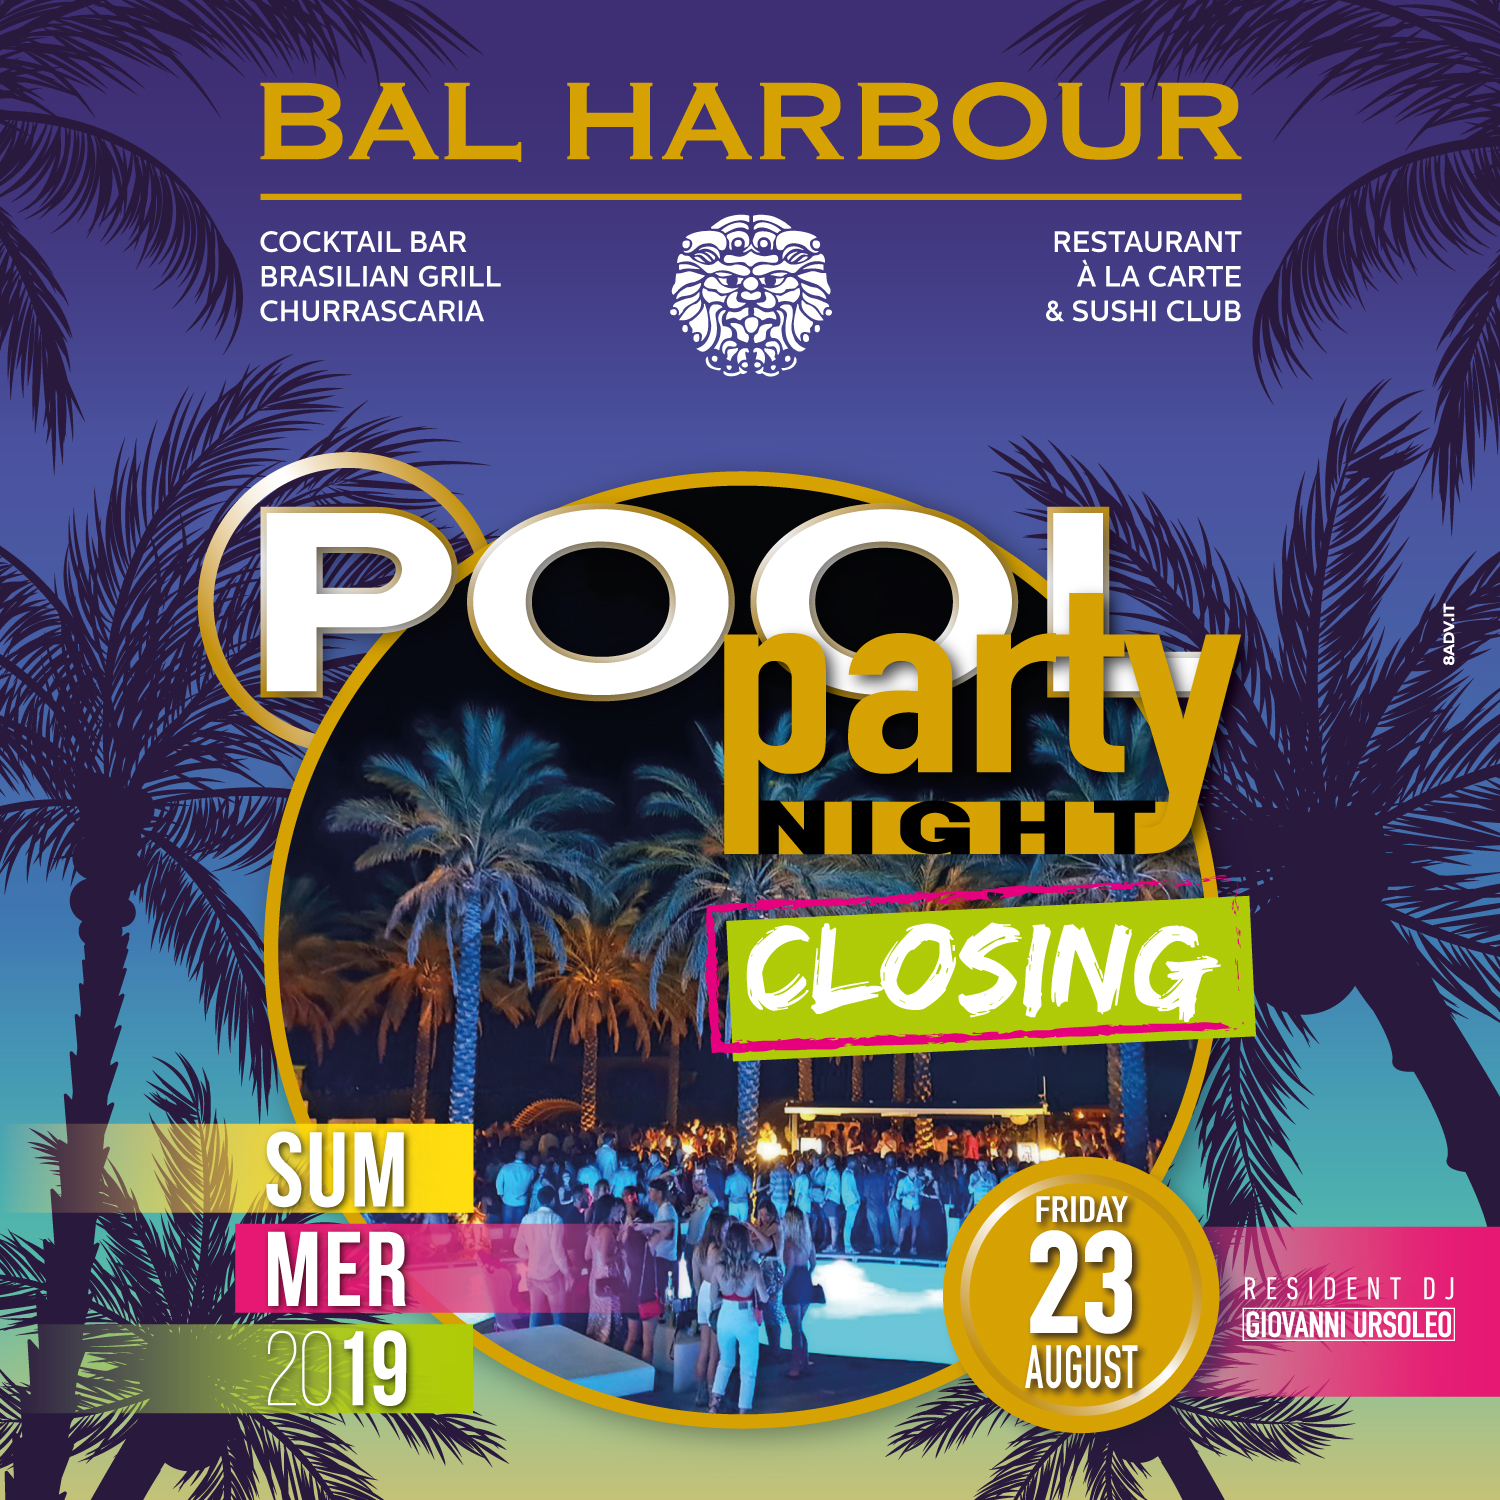 pool party night closing bar harbour san teodoro summer